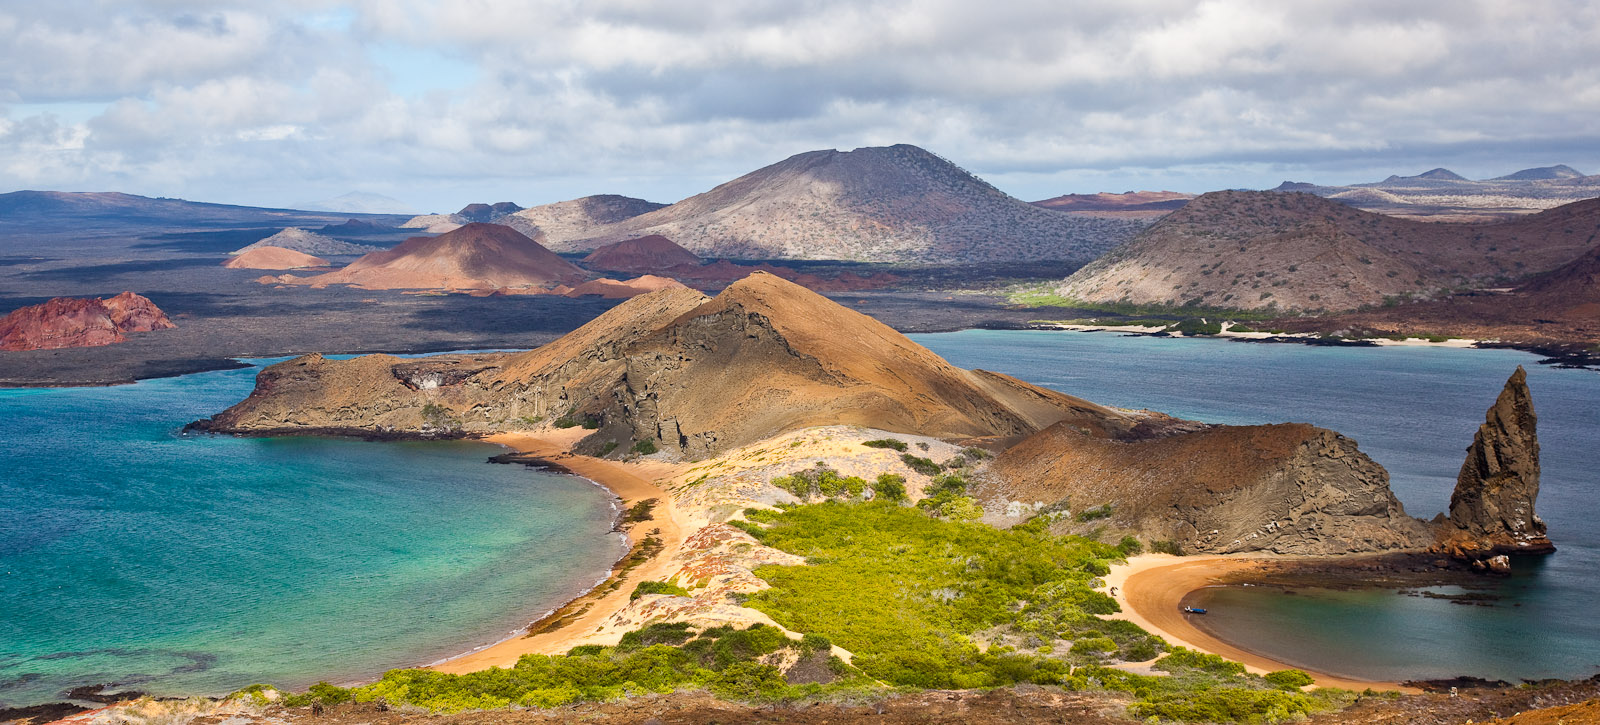 The view of Bartolomé Island with Pinnacle Rock on the right. Bartolomé Island (Spanish: Isla Bartolomé) is a volcanic islet in the Galápagos Islands group. It is a volcanic islet just off the east coast of Santiago Island. It is one of the {quote}younger{quote} islands in the Galápagos archipelago. This island, and Sulivan Bay on Santiago island, are named after naturalist and life-long friend of Charles Darwin, Sir Bartholomew James Sulivan, who was a Lieutenant aboard HMS Beagle. Photo by Jay Graham